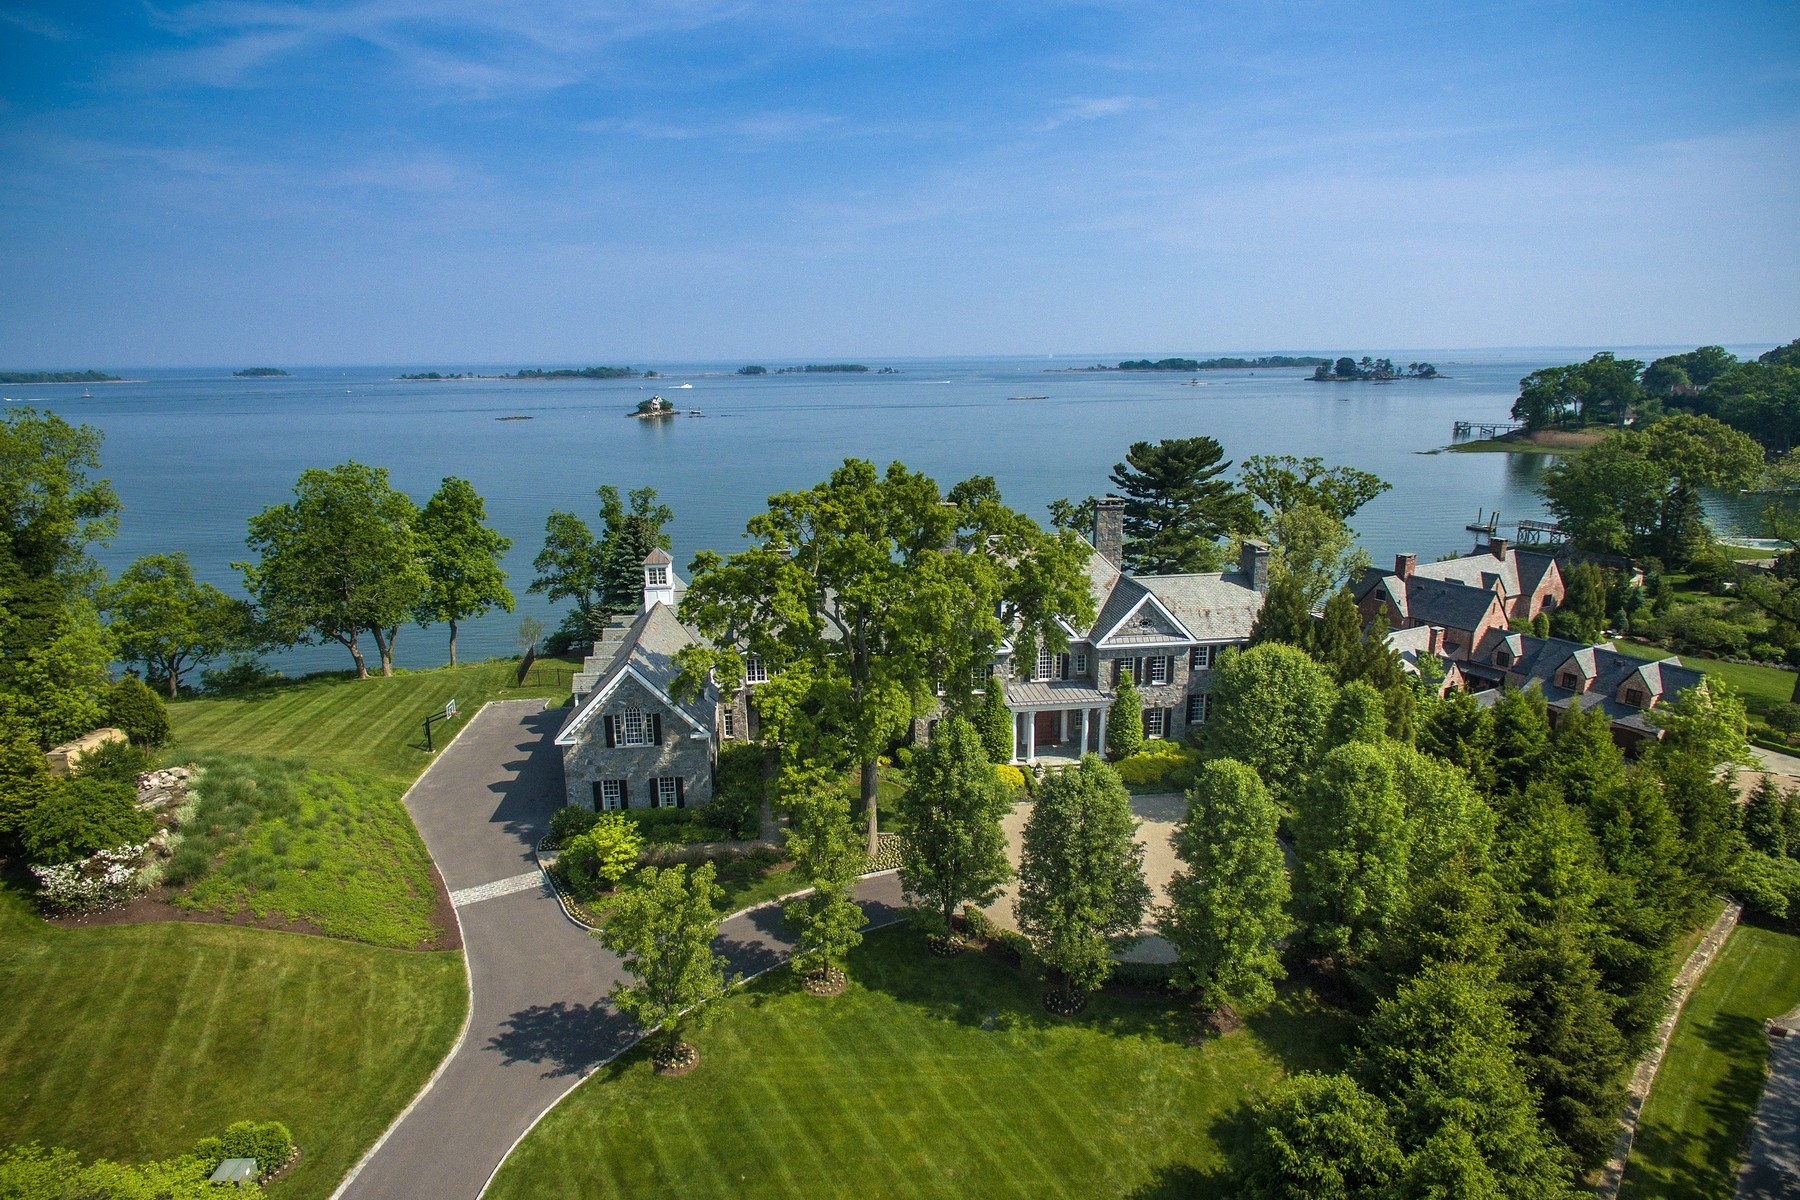 Casa Unifamiliar por un Venta en Elegant Waterfront Georgian Manor 12 Valley Road Norwalk, Connecticut, 06854 Estados Unidos